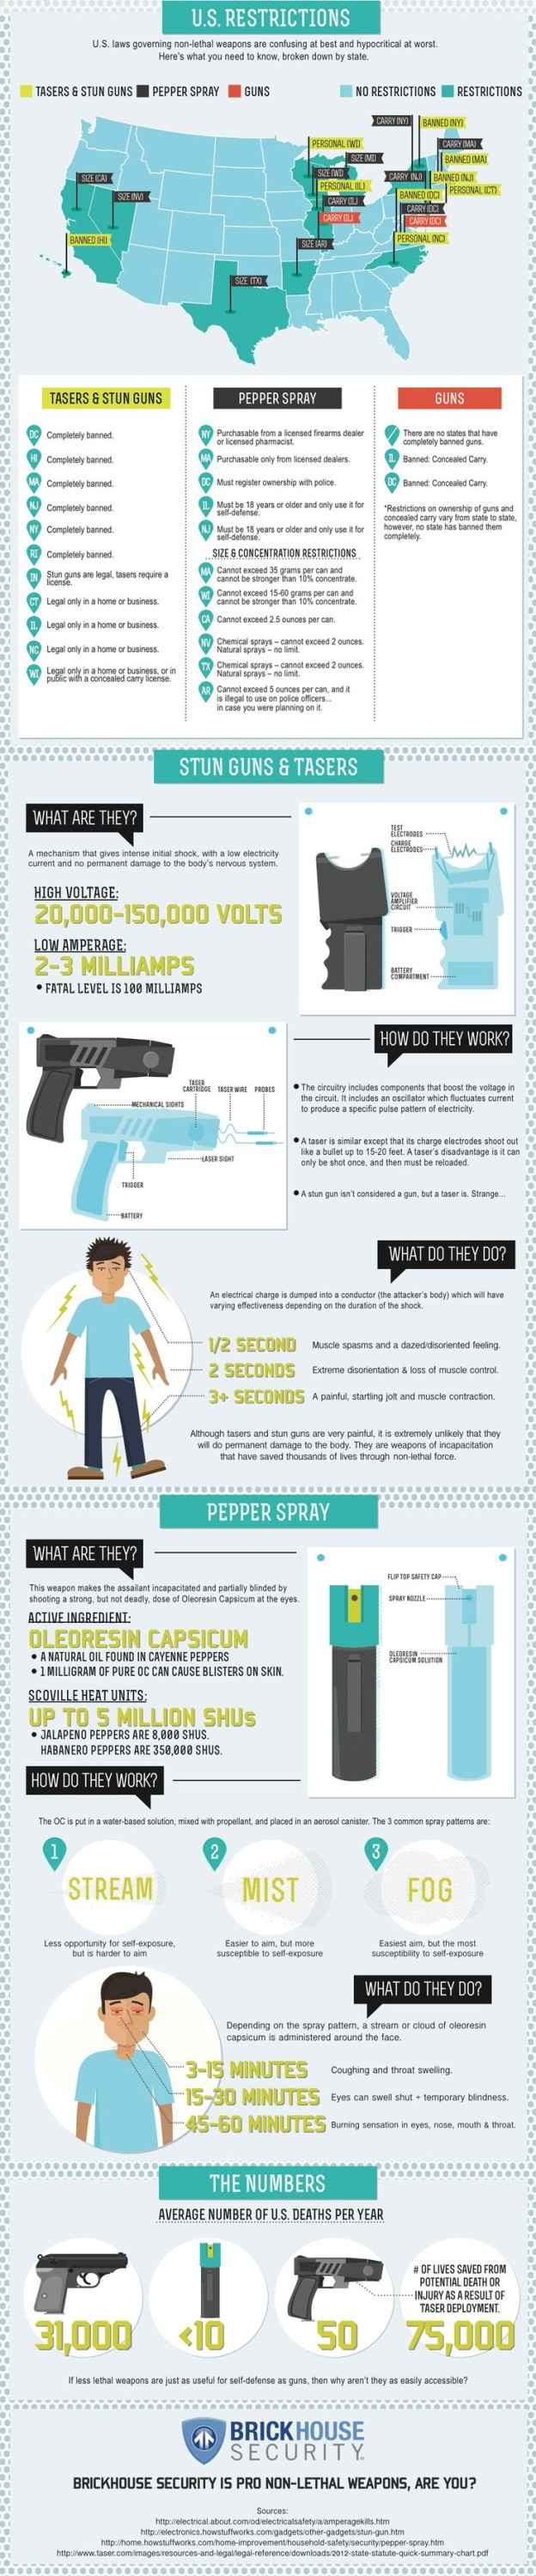 Less lethal weapons